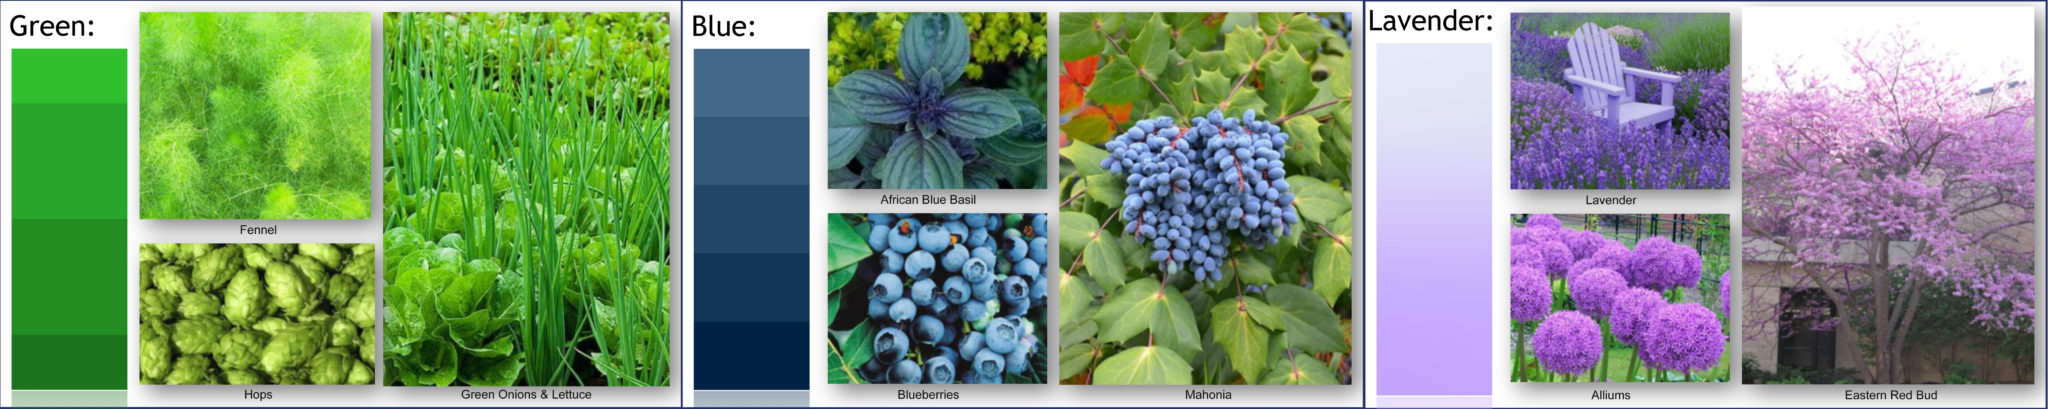 Edible color landscaping